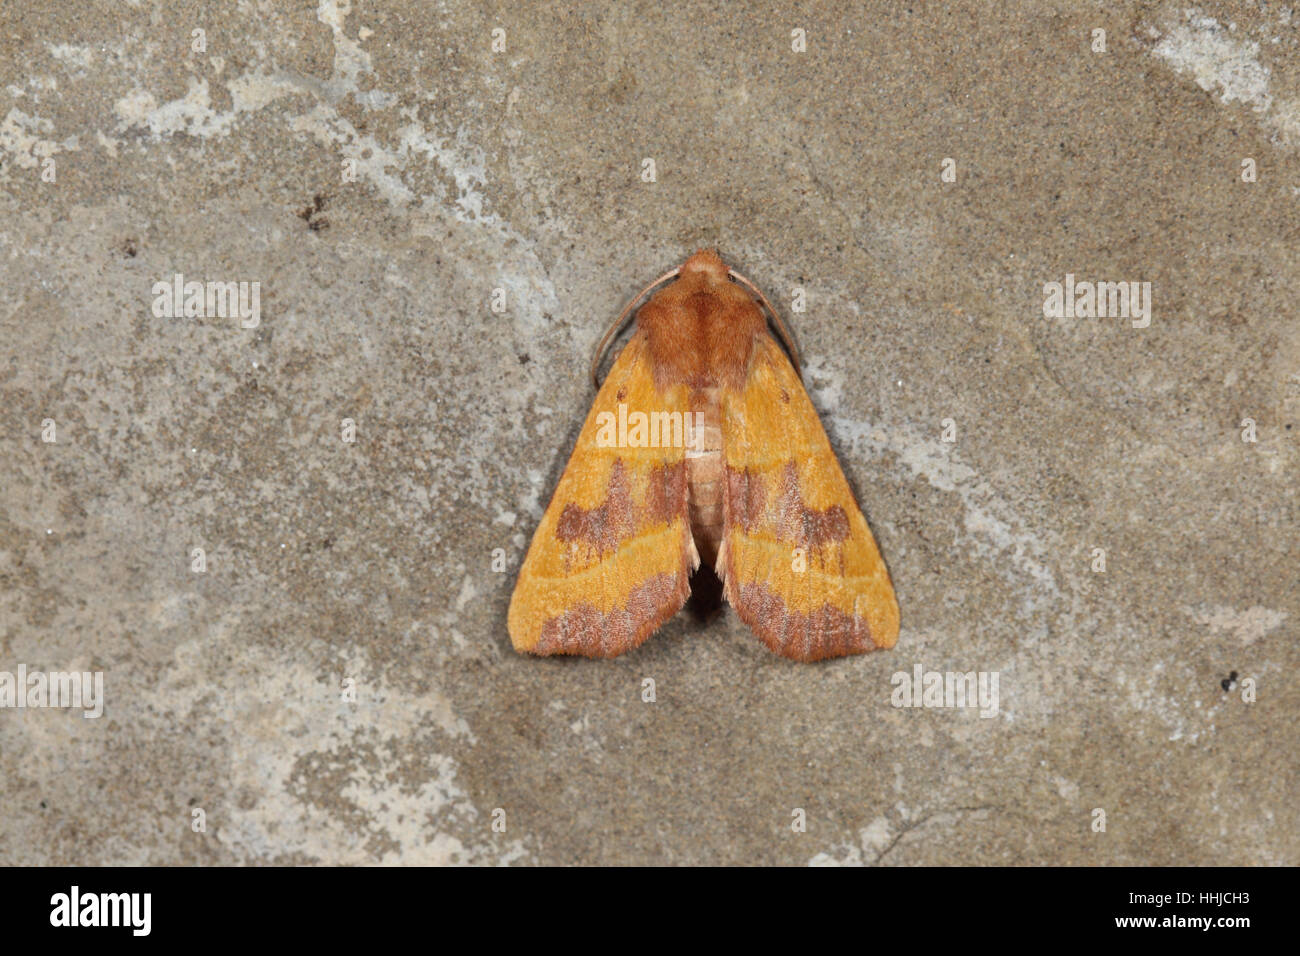 Centre-barred Sallow (Atethmia centrago) - yellow and pink-brown moth perched on stone in suburban garden - Stock Image